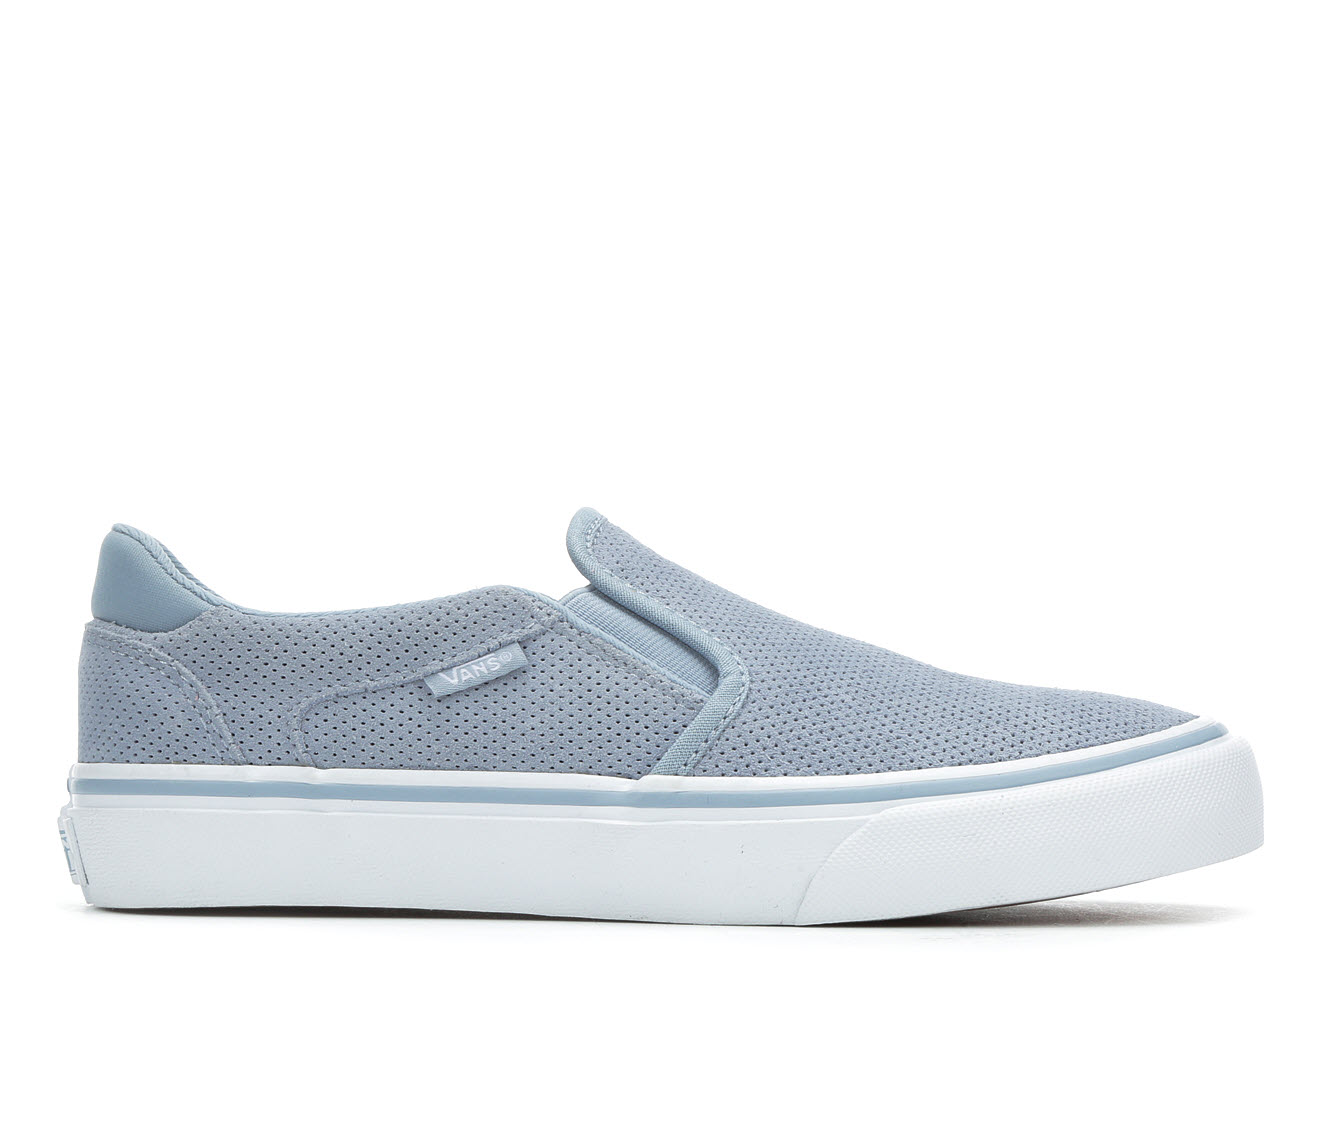 Vans Asher Deluxe Women's Athletic Shoe (Blue)